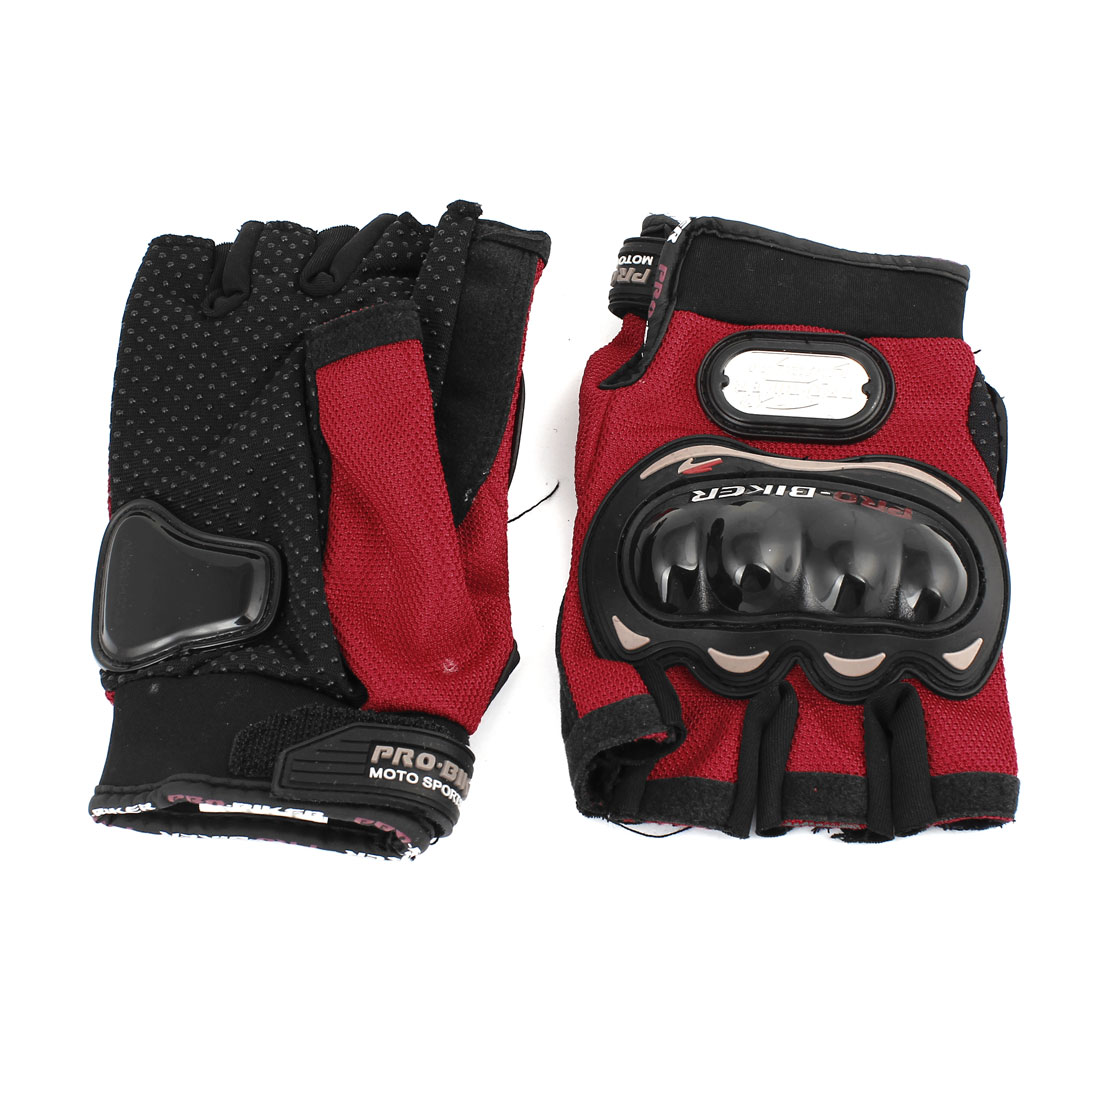 2 Pcs Motorcycle Motocross Sports Riding Racing Cycling Full Finger Gloves XXL Red Black